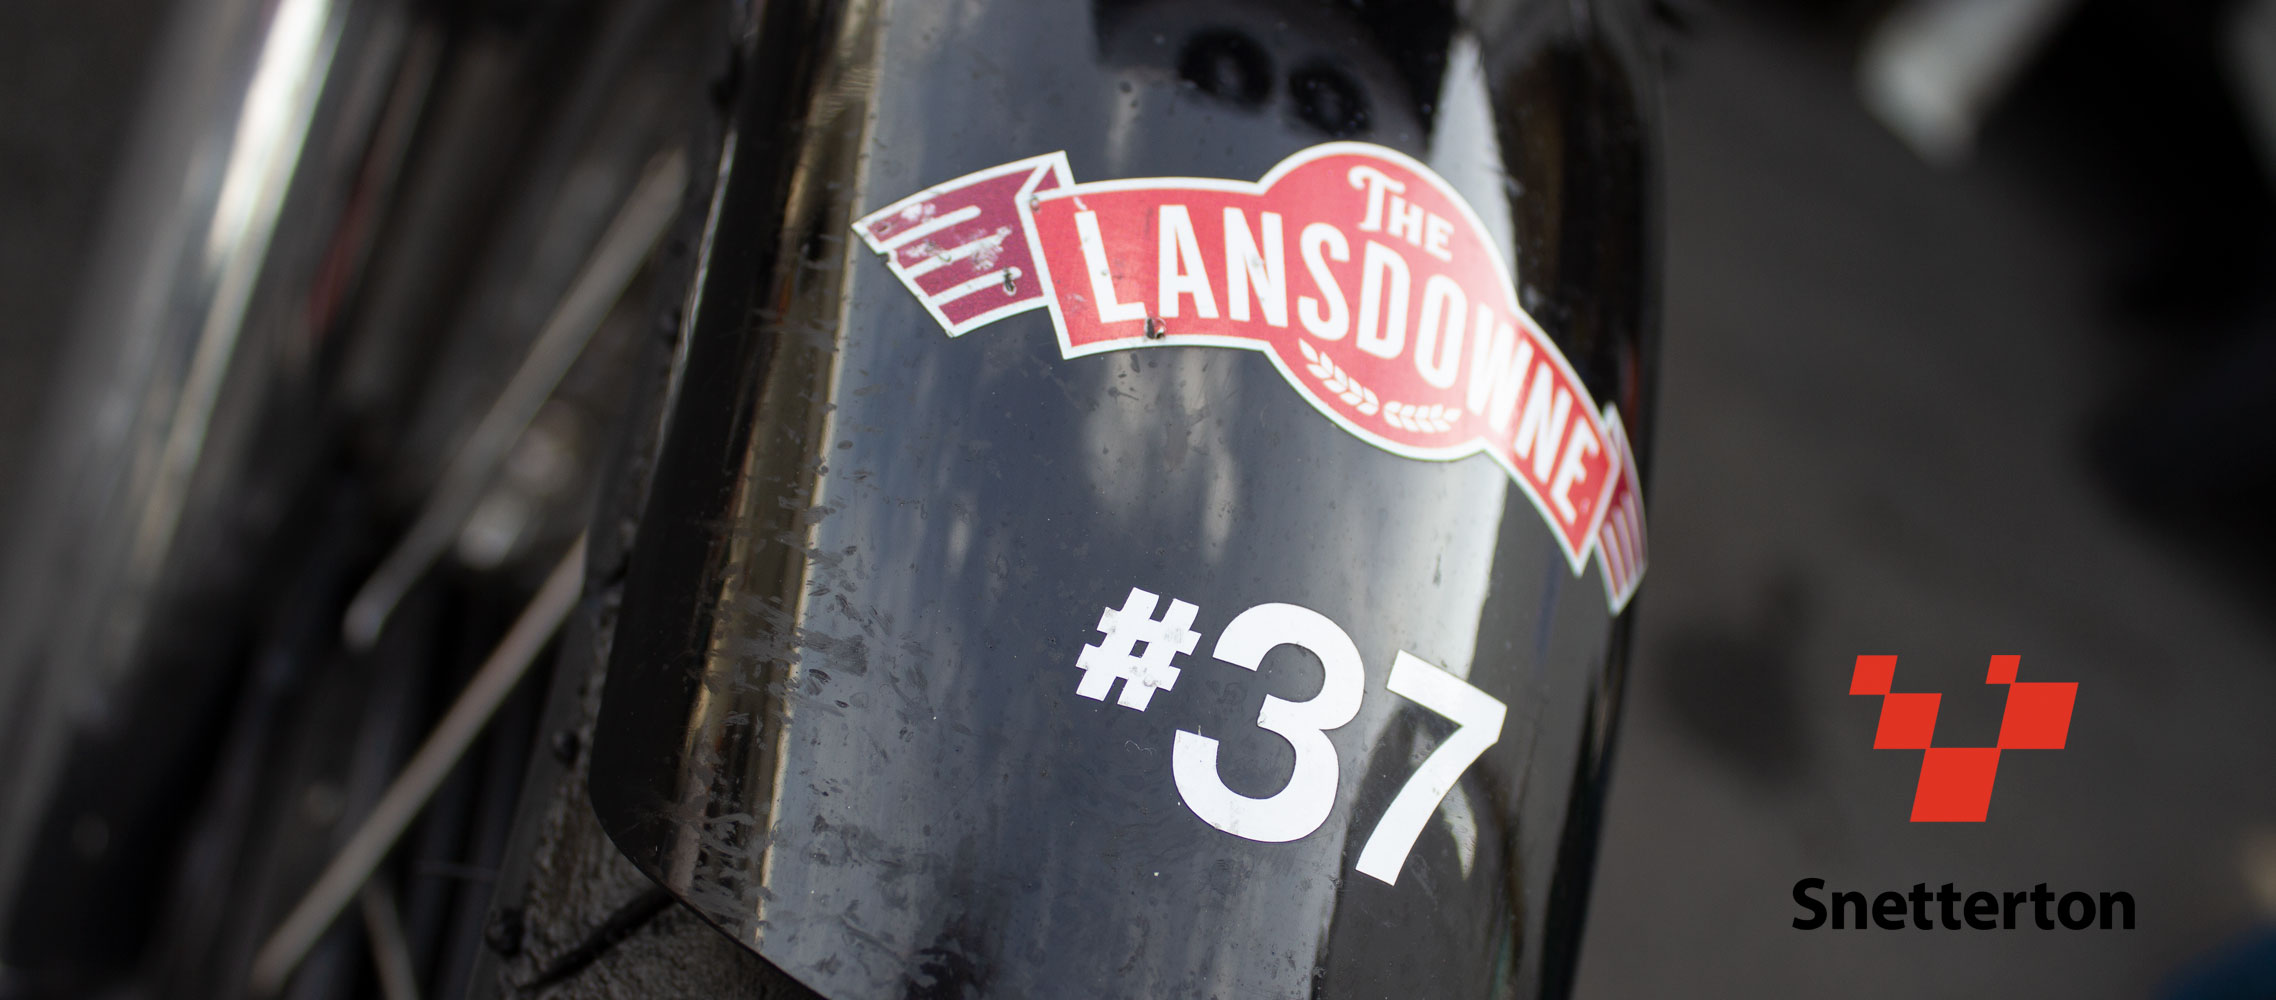 The Lansdowne celebrate the life and racing of Clive Ling